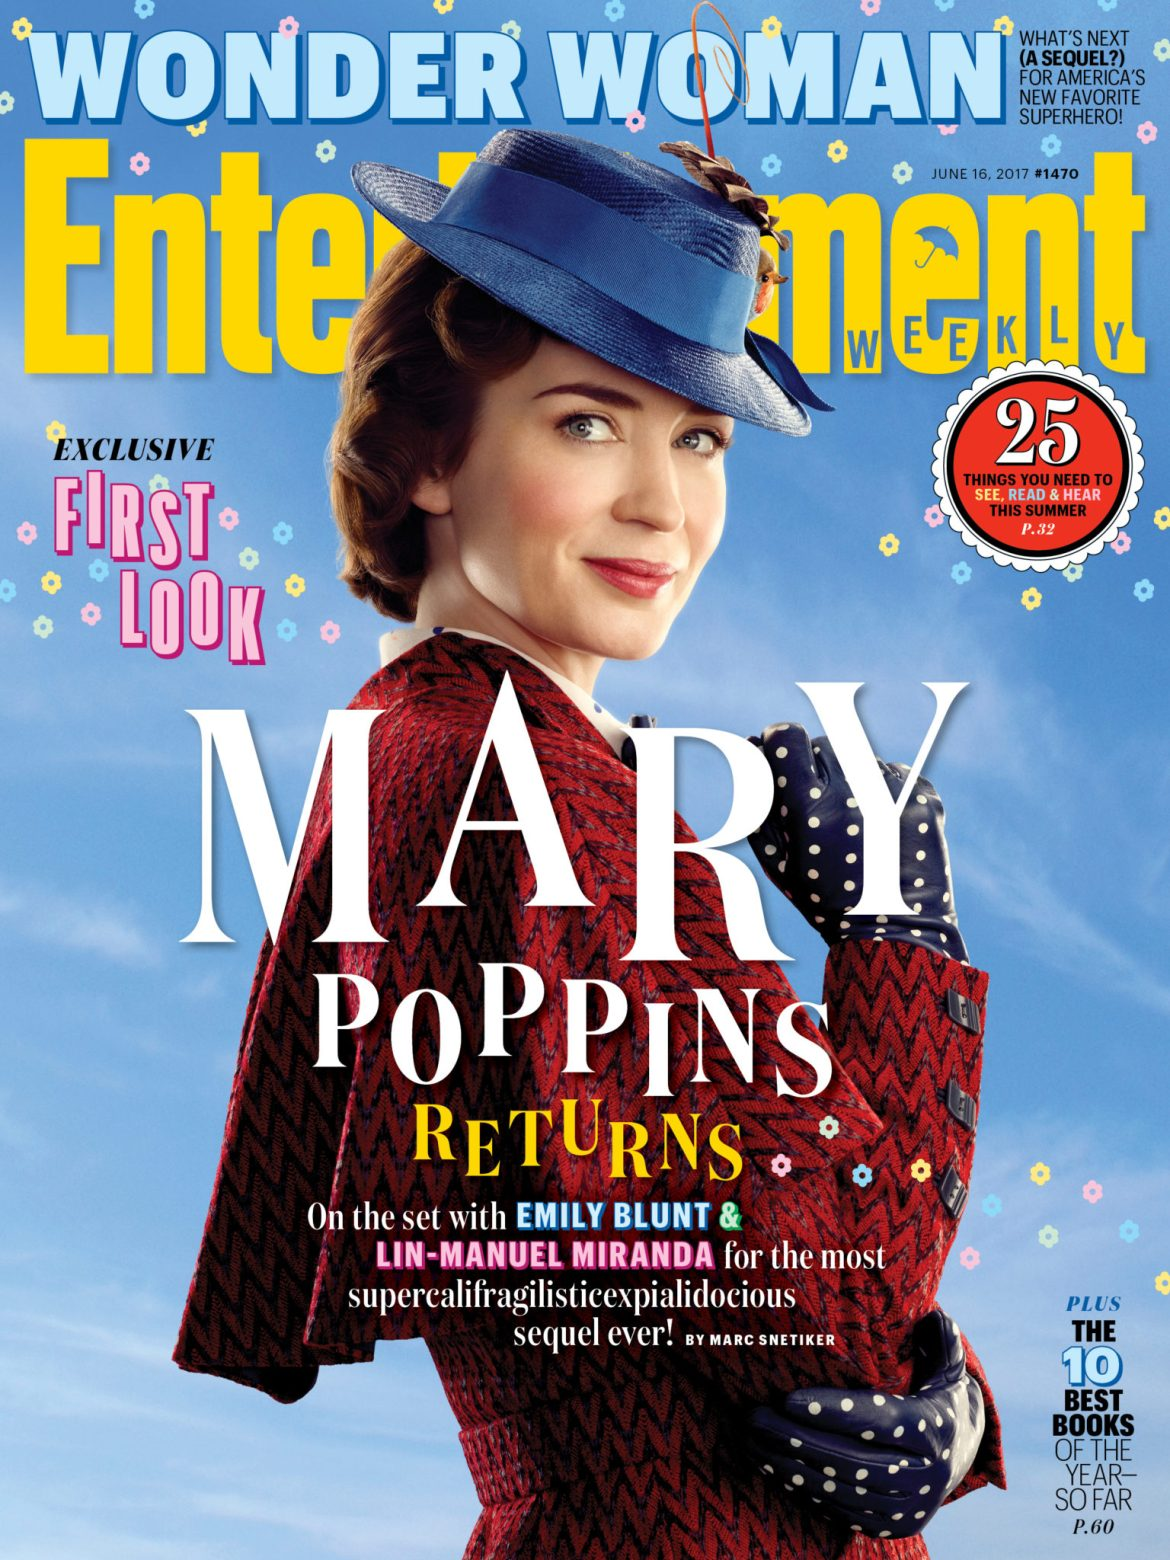 Our First Look Into Disney's Next Live Action Movie: 'Mary Poppins Returns'